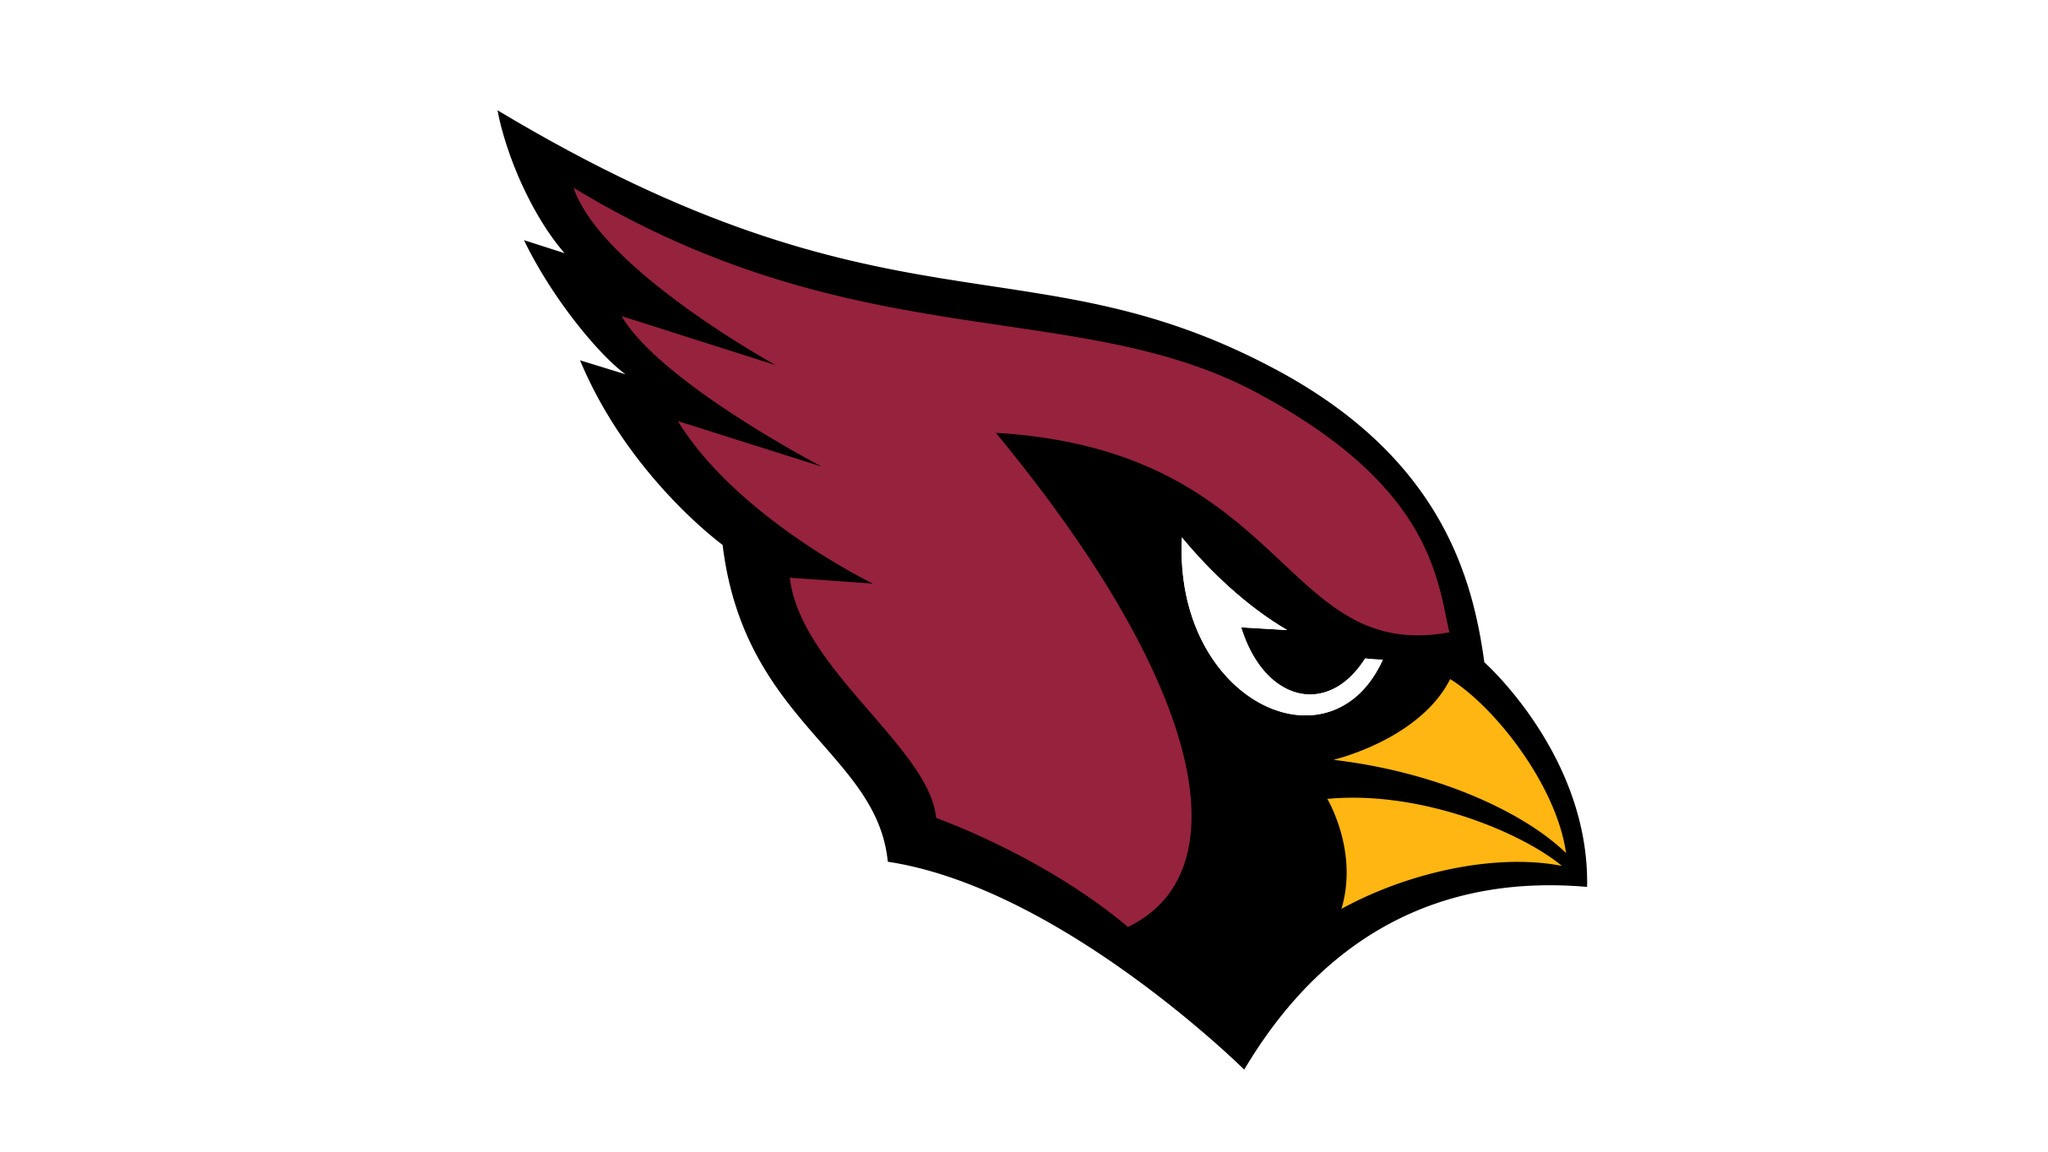 2048x1152 Arizona Cardinals Vs. Seattle Seahawks University Of Phoenix